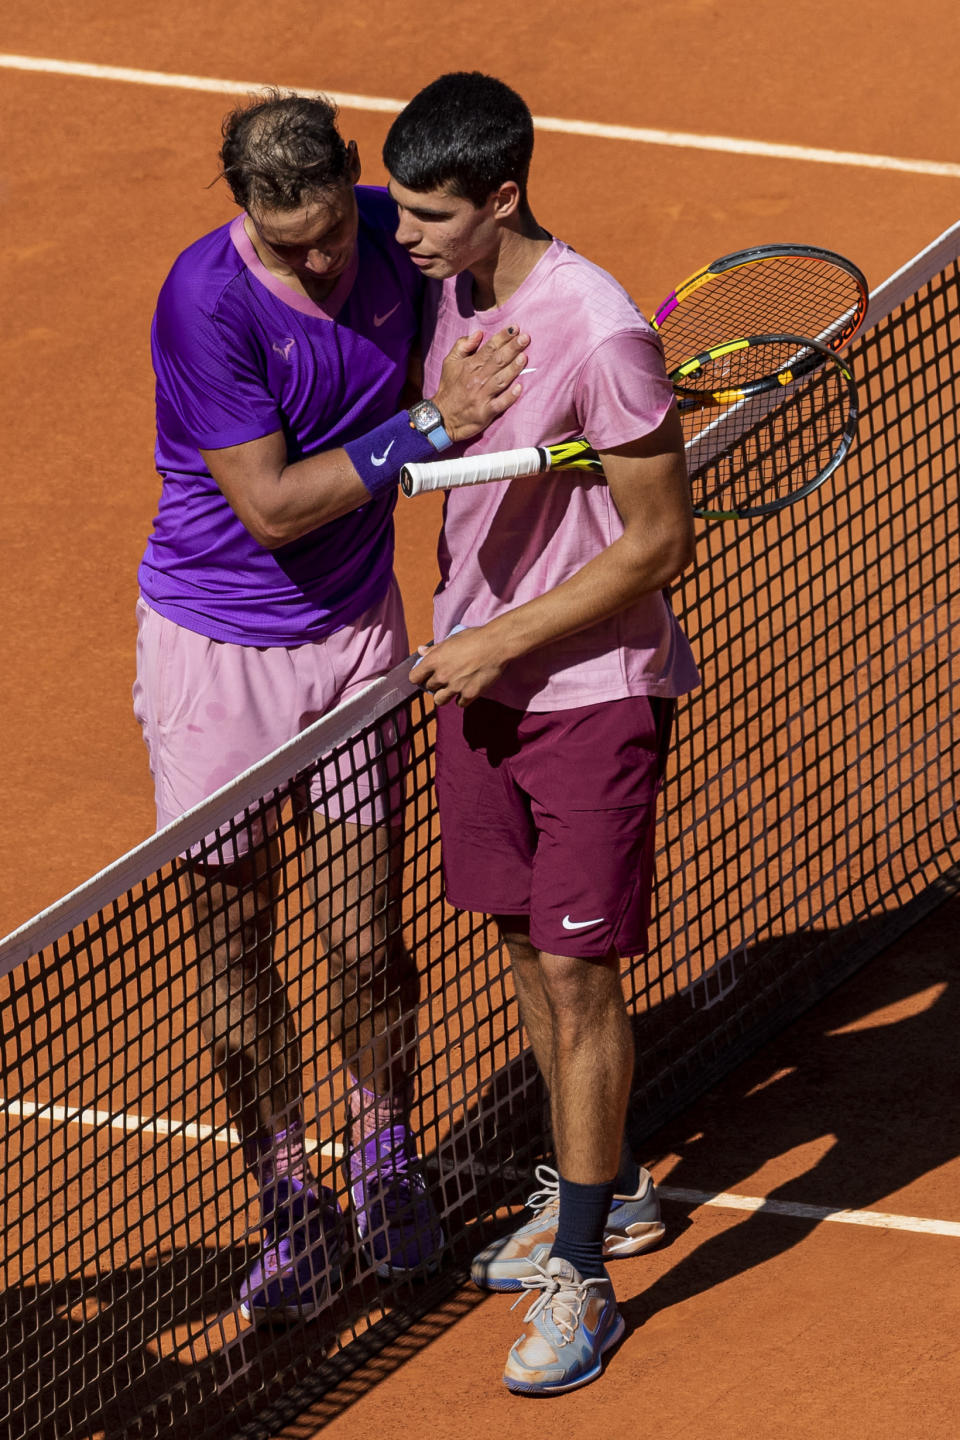 Spain's Rafael Nadal, left, and Spain's Carlos Alcaraz after their match at the Mutua Madrid Open tennis tournament in Madrid, Spain, Wednesday, May 5, 2021. (AP Photo/Bernat Armangue)